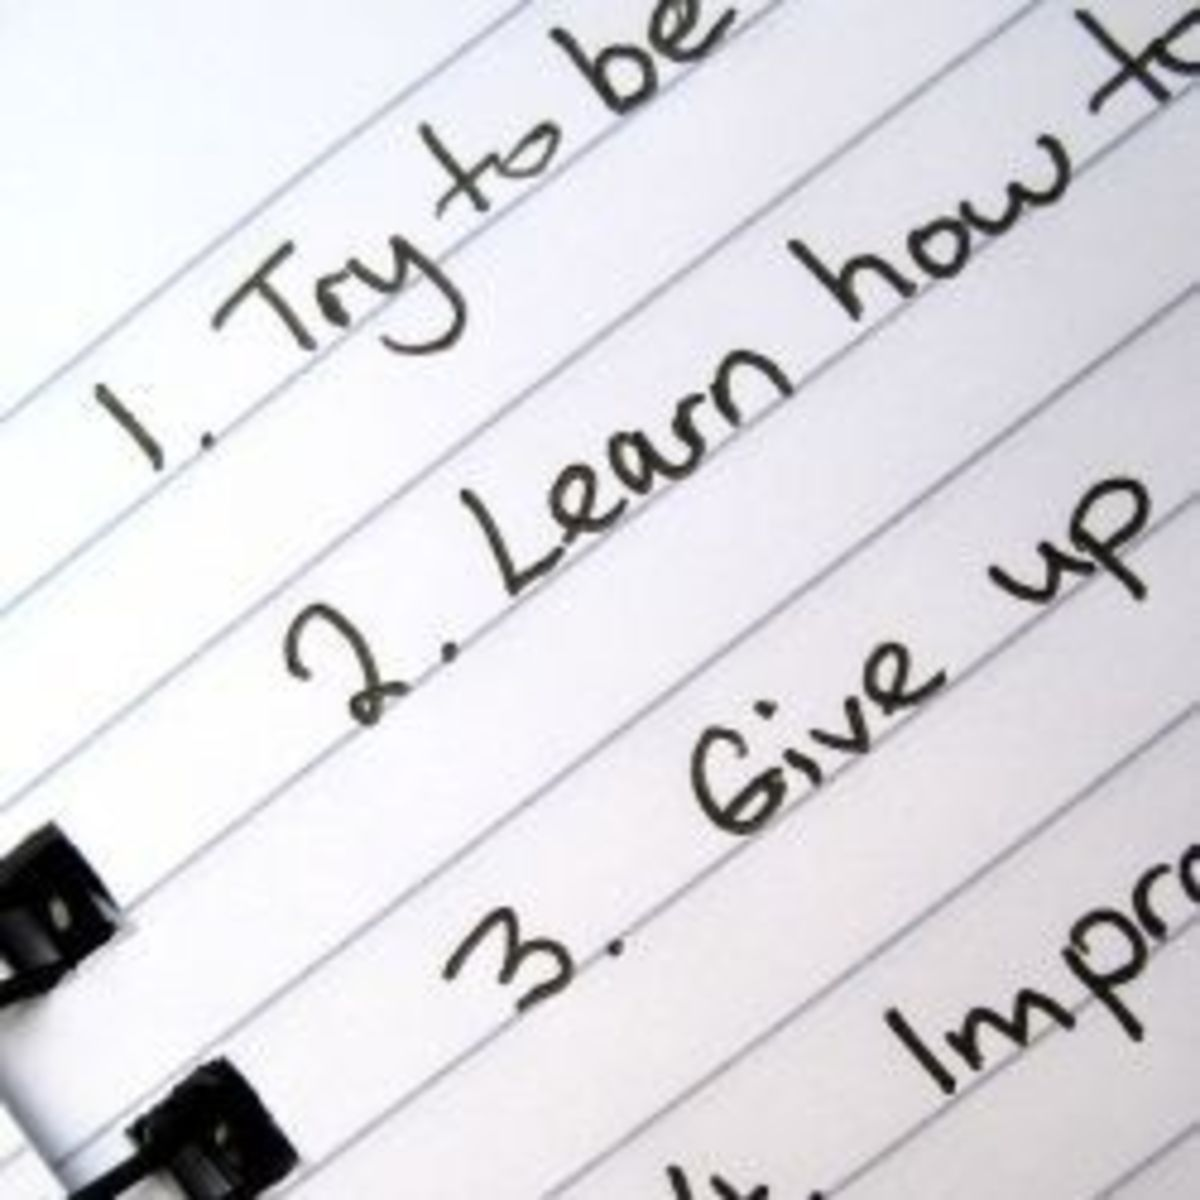 The Ten Top New Years Resolutions for 2014 - Trying to Improve